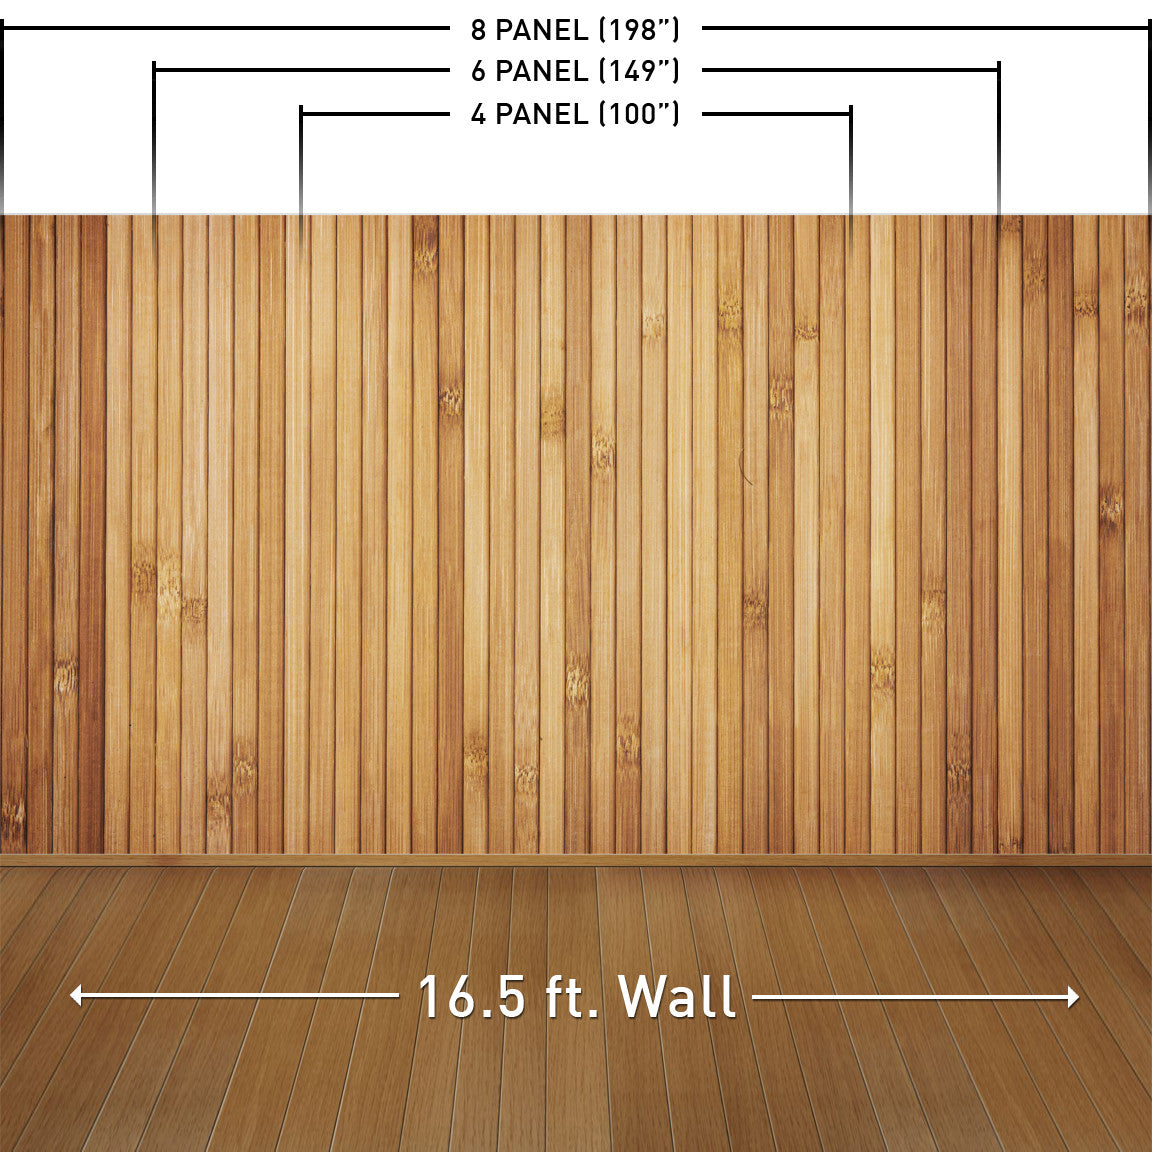 Retro Wood Light Wall Mural